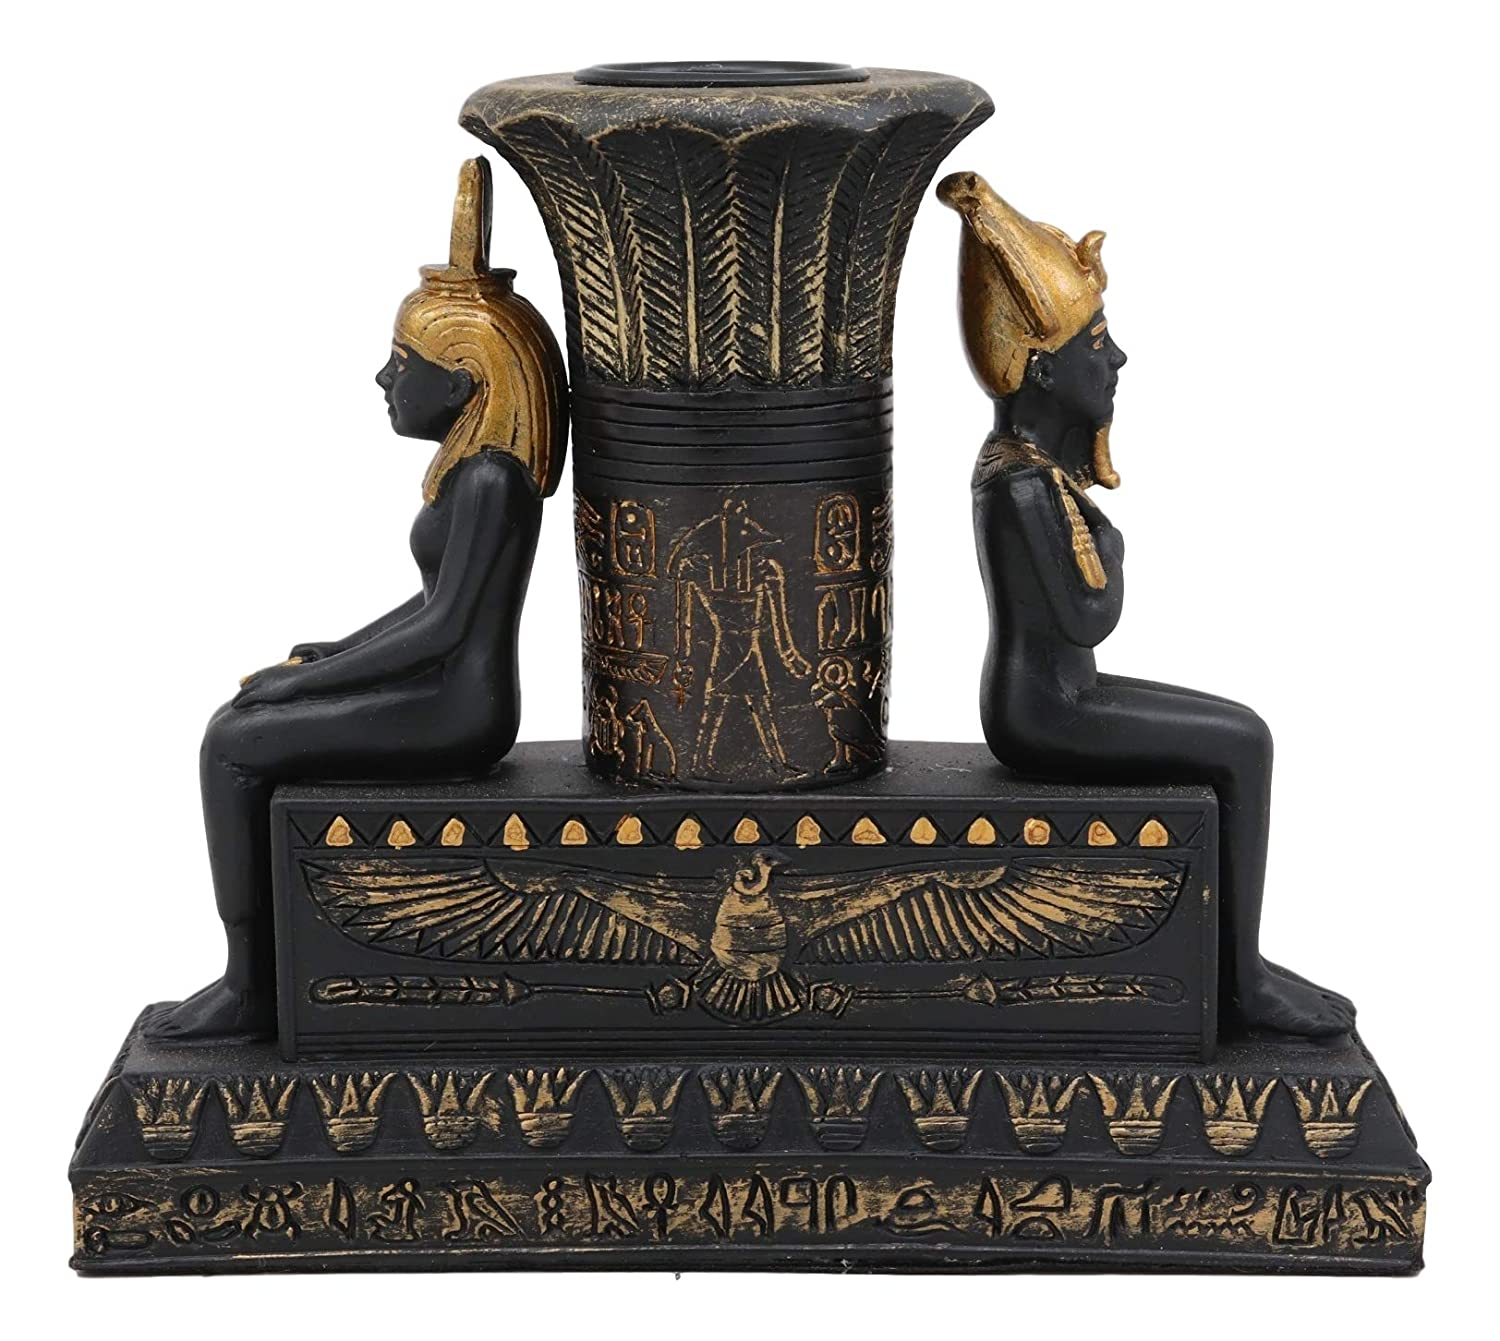 Ebros Ancient Classical Egyptian Black and Gold Seated Isis and Osiris Pillar Candle Holder Figurine Candleholder Home Decor Statue As Decorative Sculpture Gods and Goddesses of Egypt Collectible